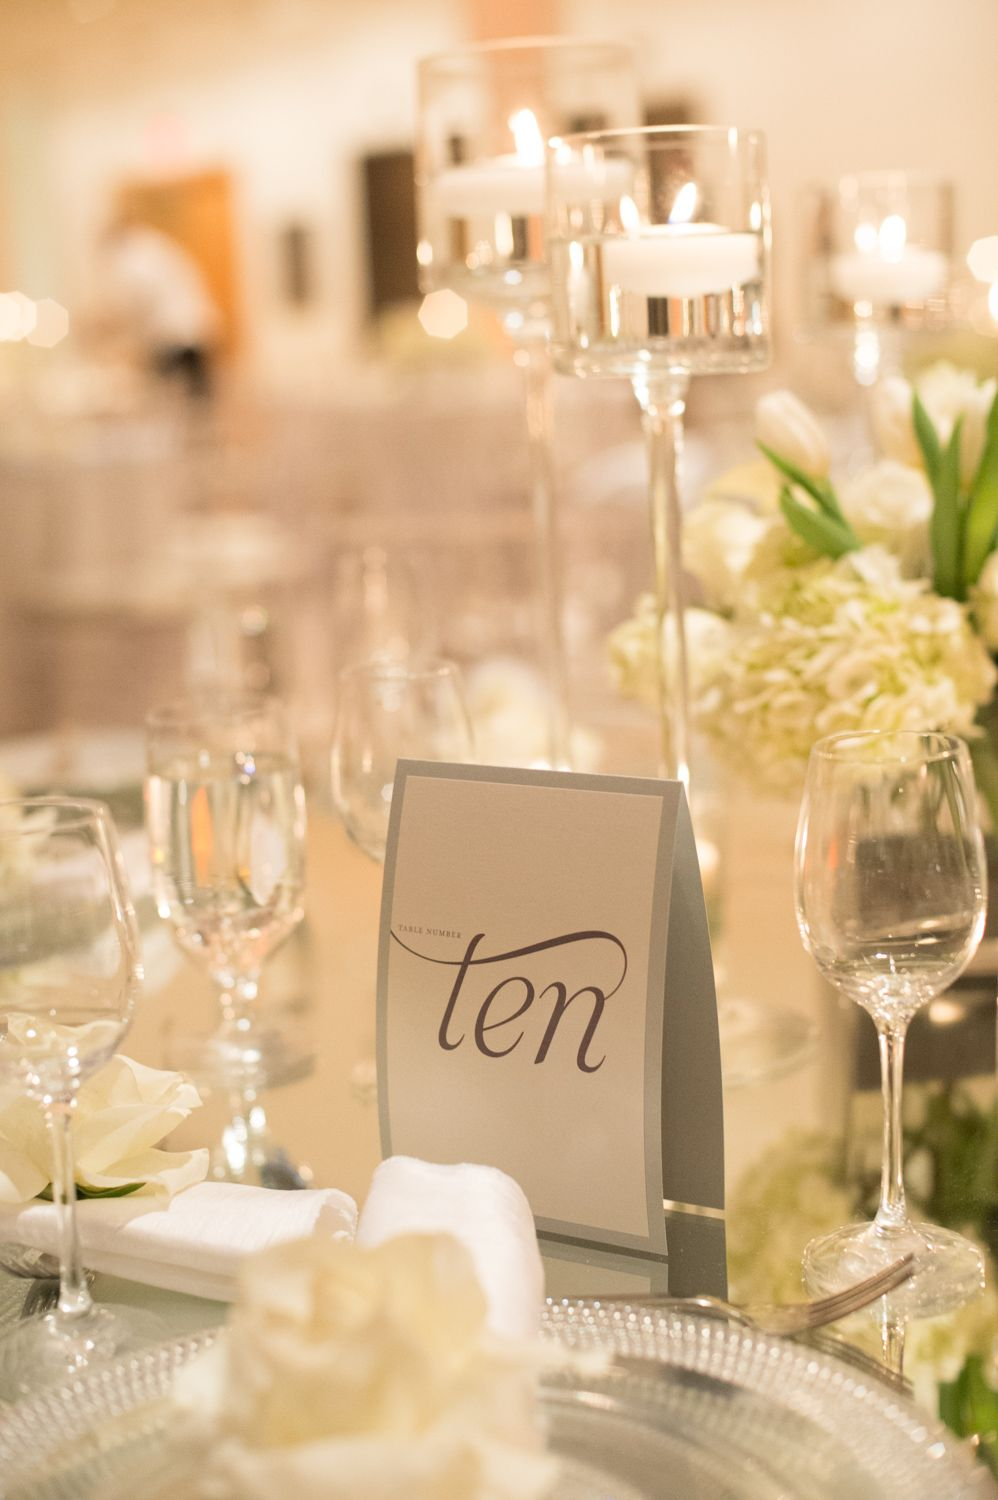 Pin by Inside Weddings on Table Names & Numbers Wedding